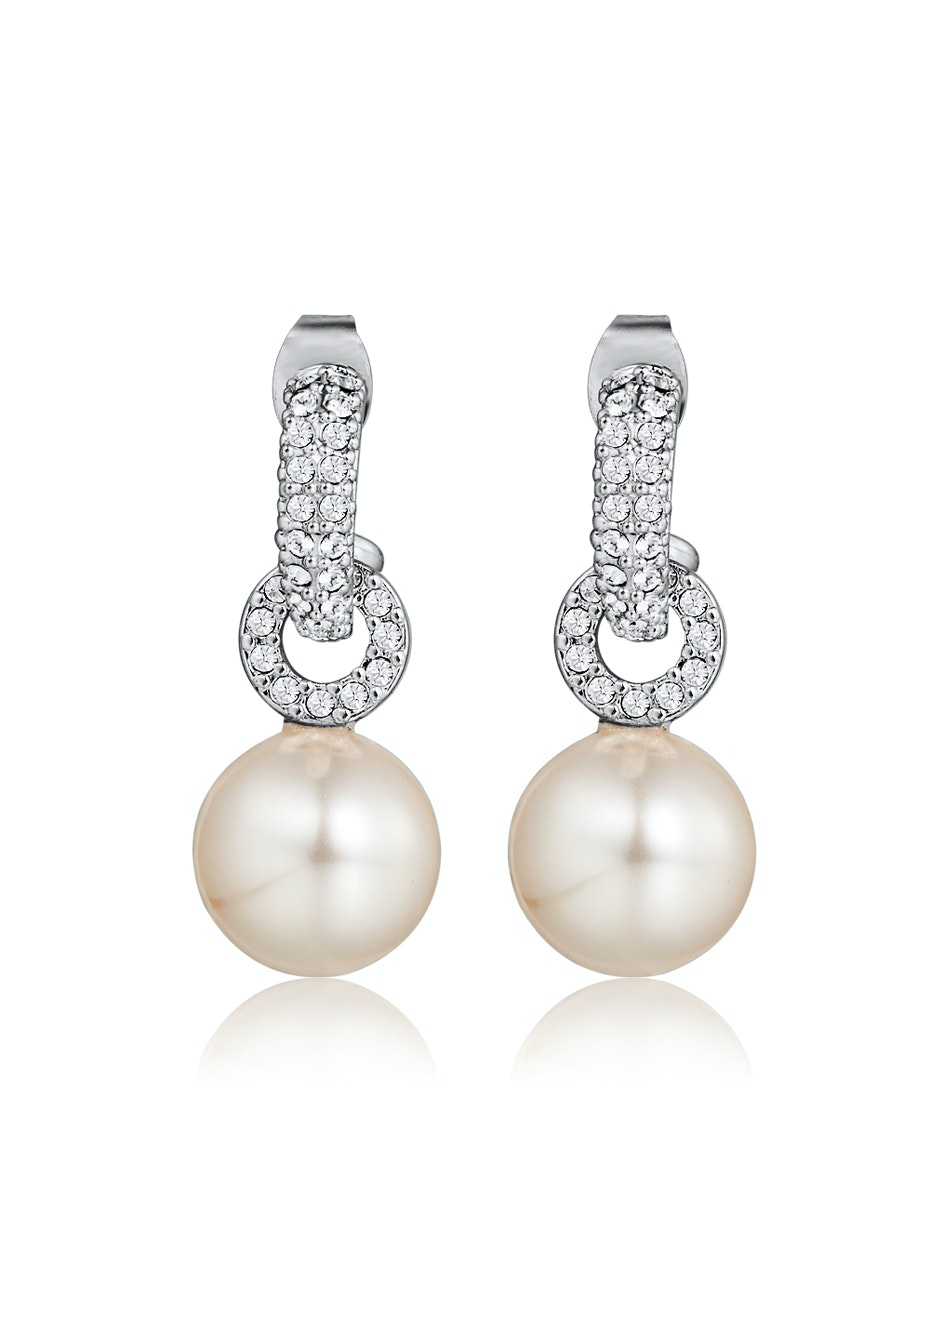 Pearl Drop Earrings Embellished with Crystals from Swarovski